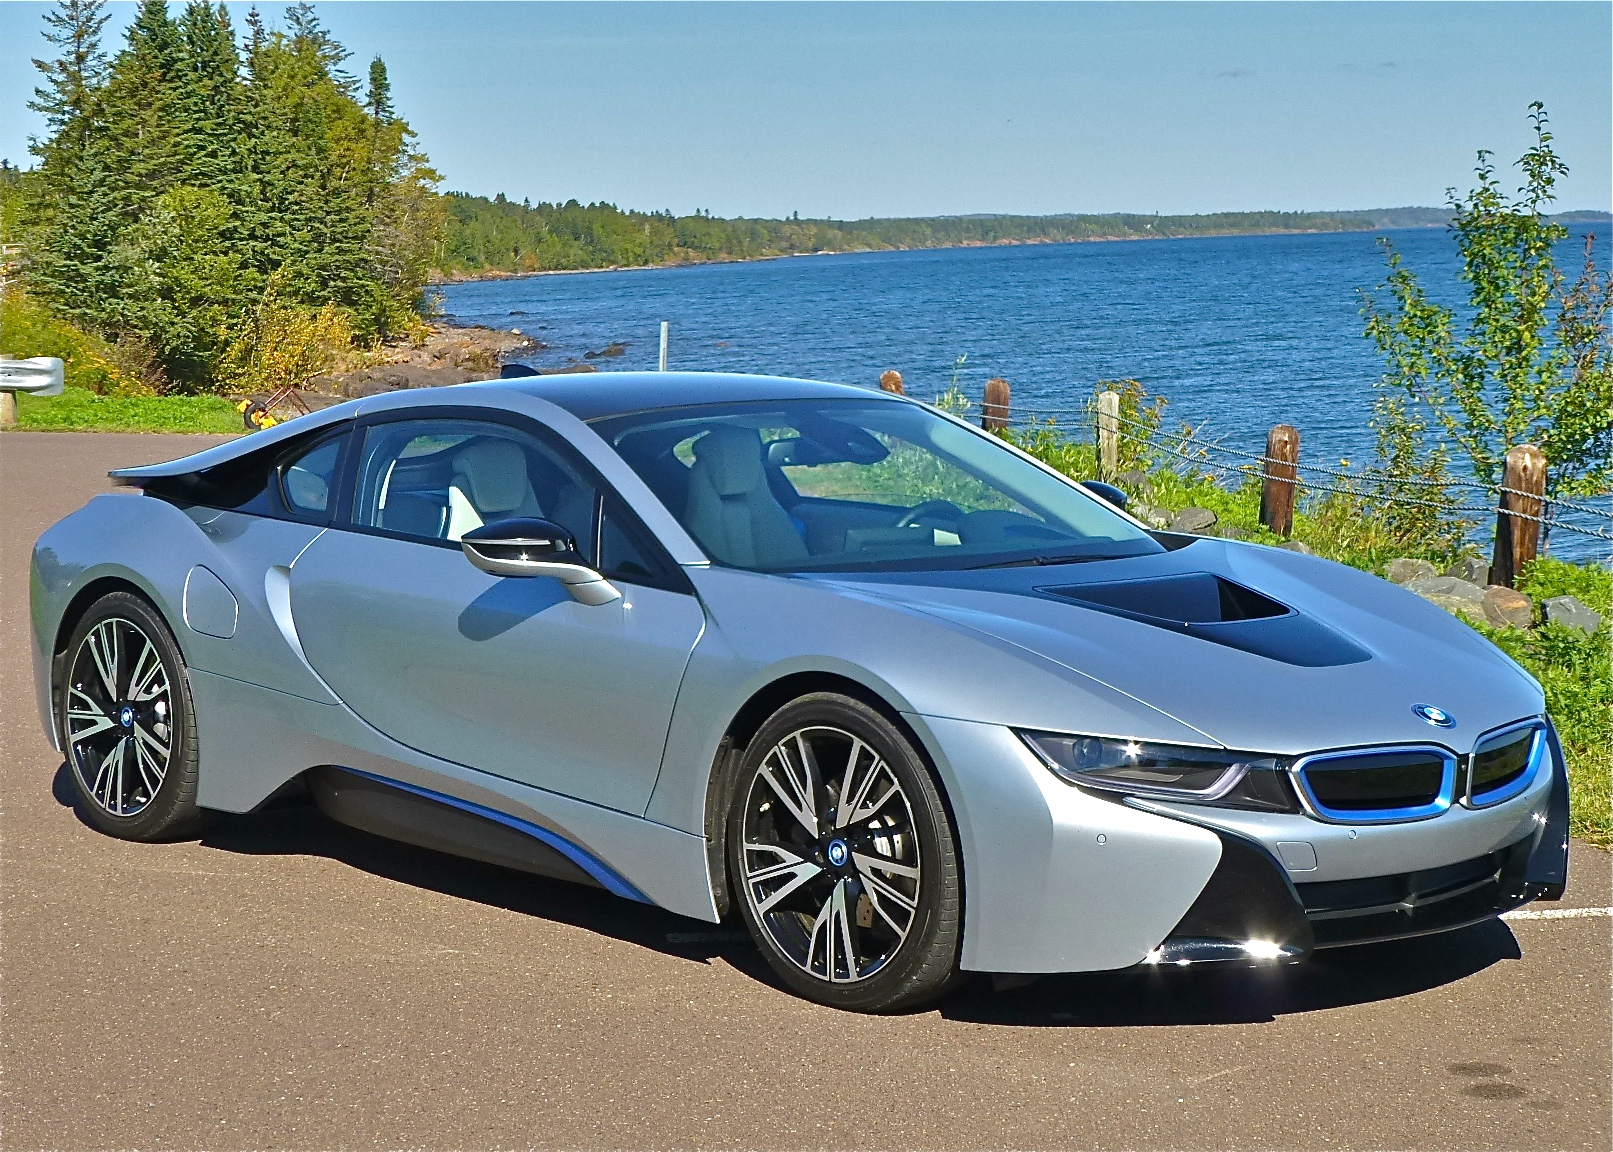 Low and sensual, the BMW i8 is a carbon-fiber exotic hybrid car with all-wheel drive.